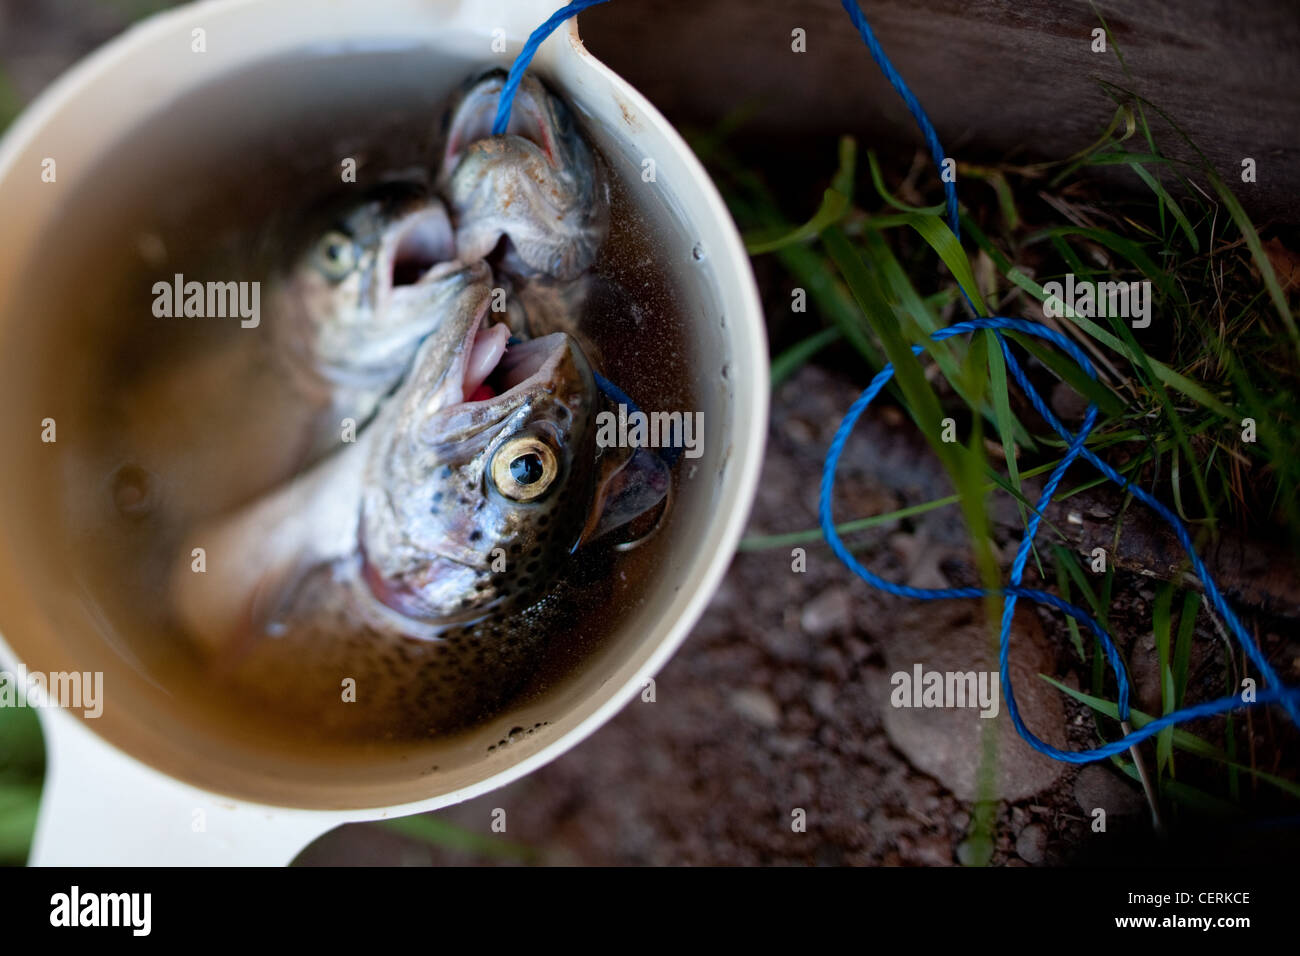 Fish caught and placed in a pitcher - Stock Image